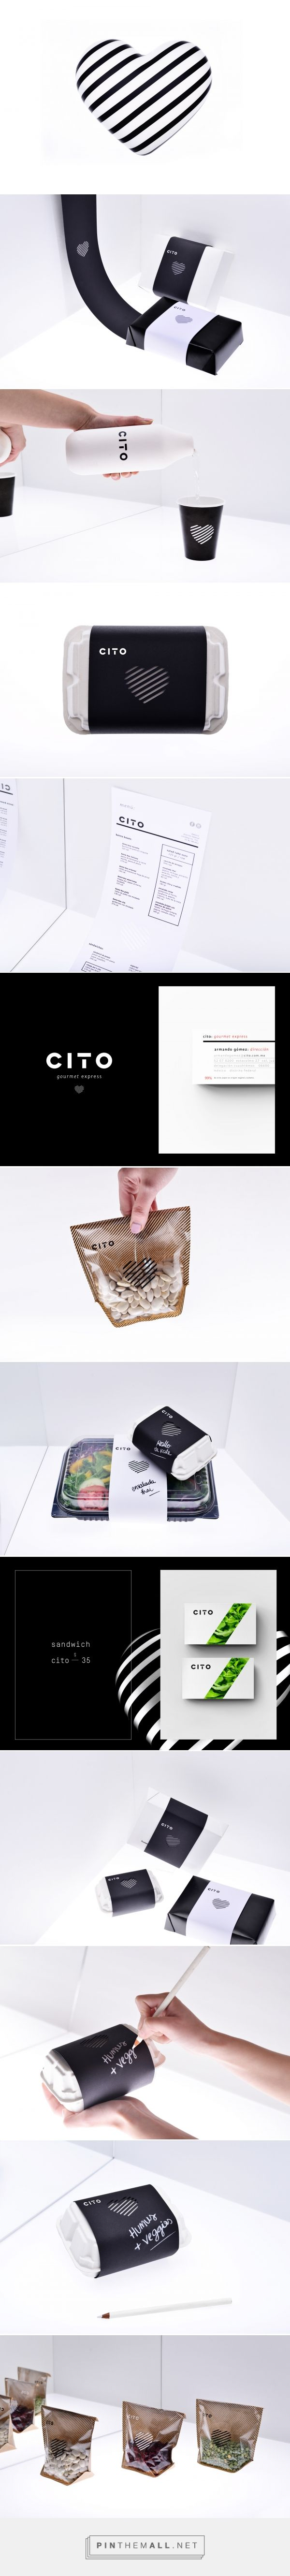 Cito Food Packaging by Estudio Yeyé ® | Fivestar Branding Agency – Design and Branding Agency & Curated Inspiration Gallery